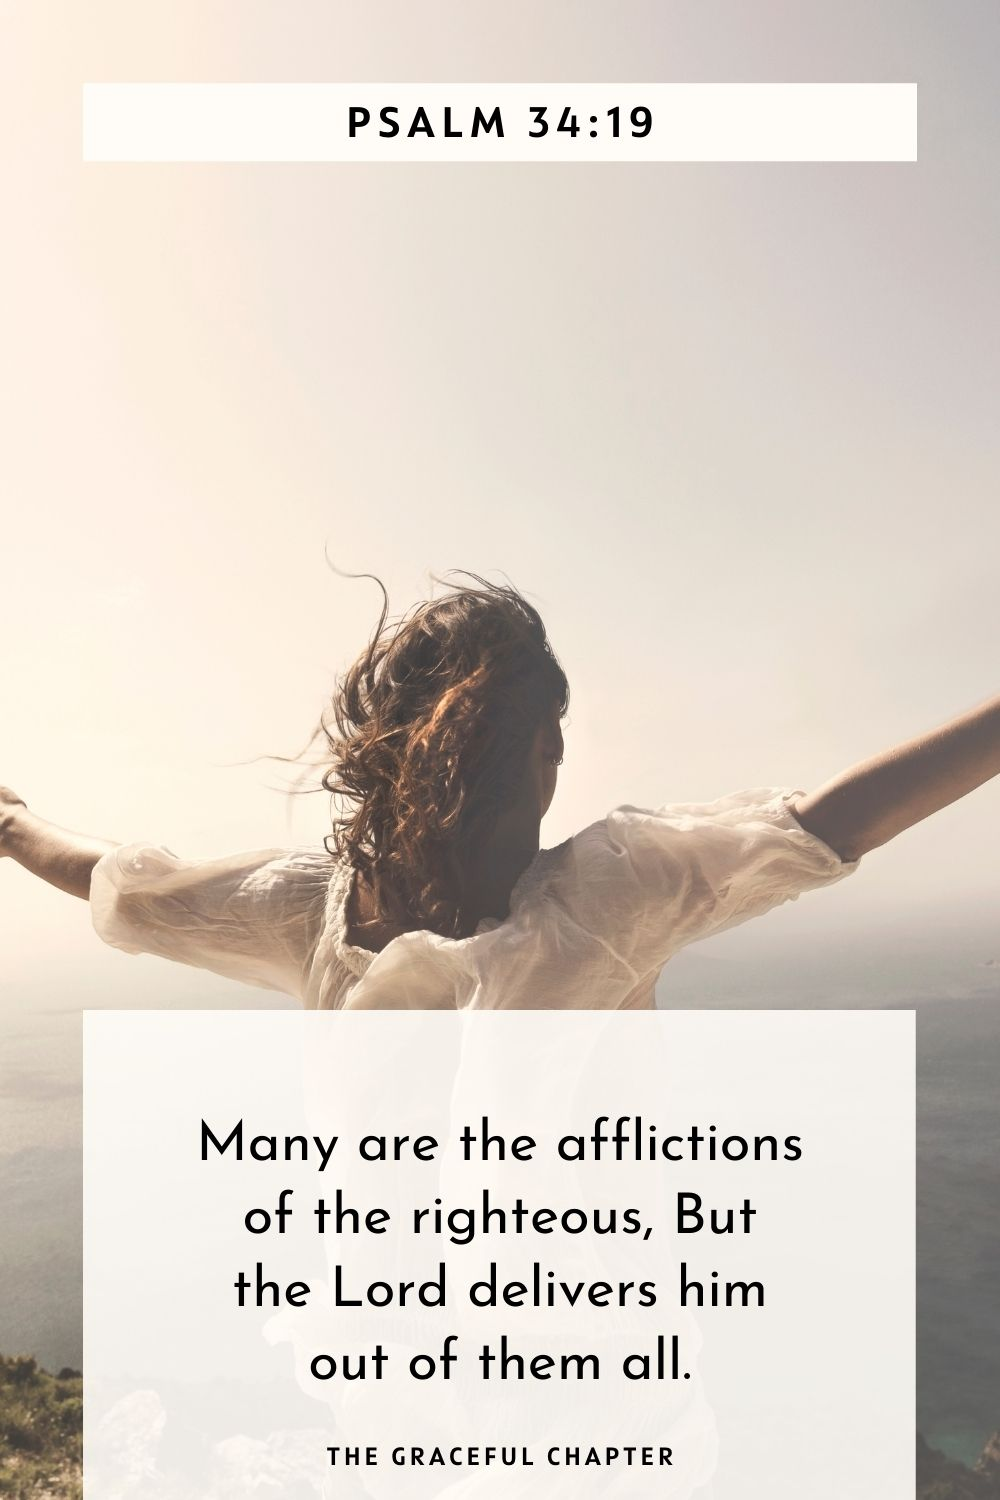 Many are the afflictions of the righteous, But the Lord delivers him out of them all. Psalm 34:19